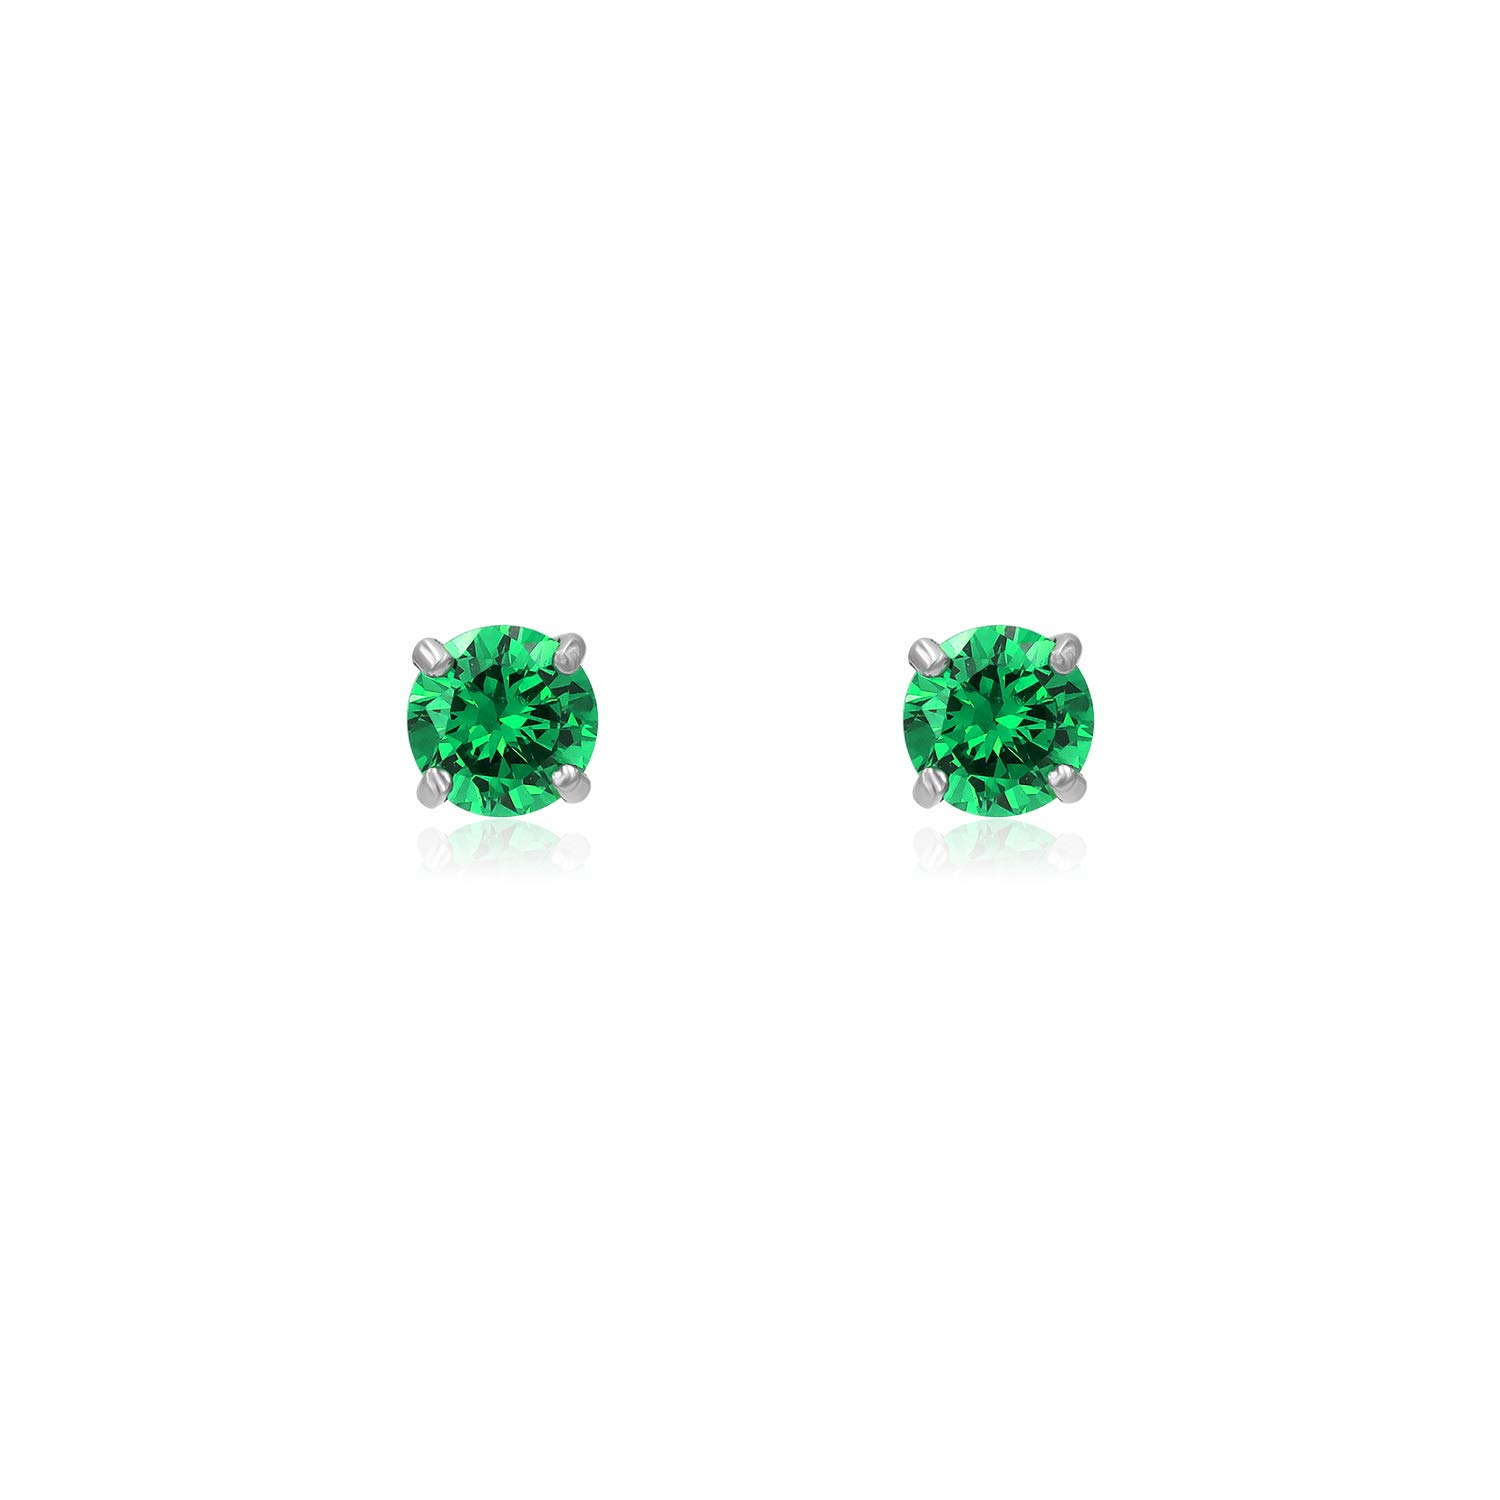 River Island Jewelry Multi Color Cubic Zirconia 6 mm Round Stud Earrings